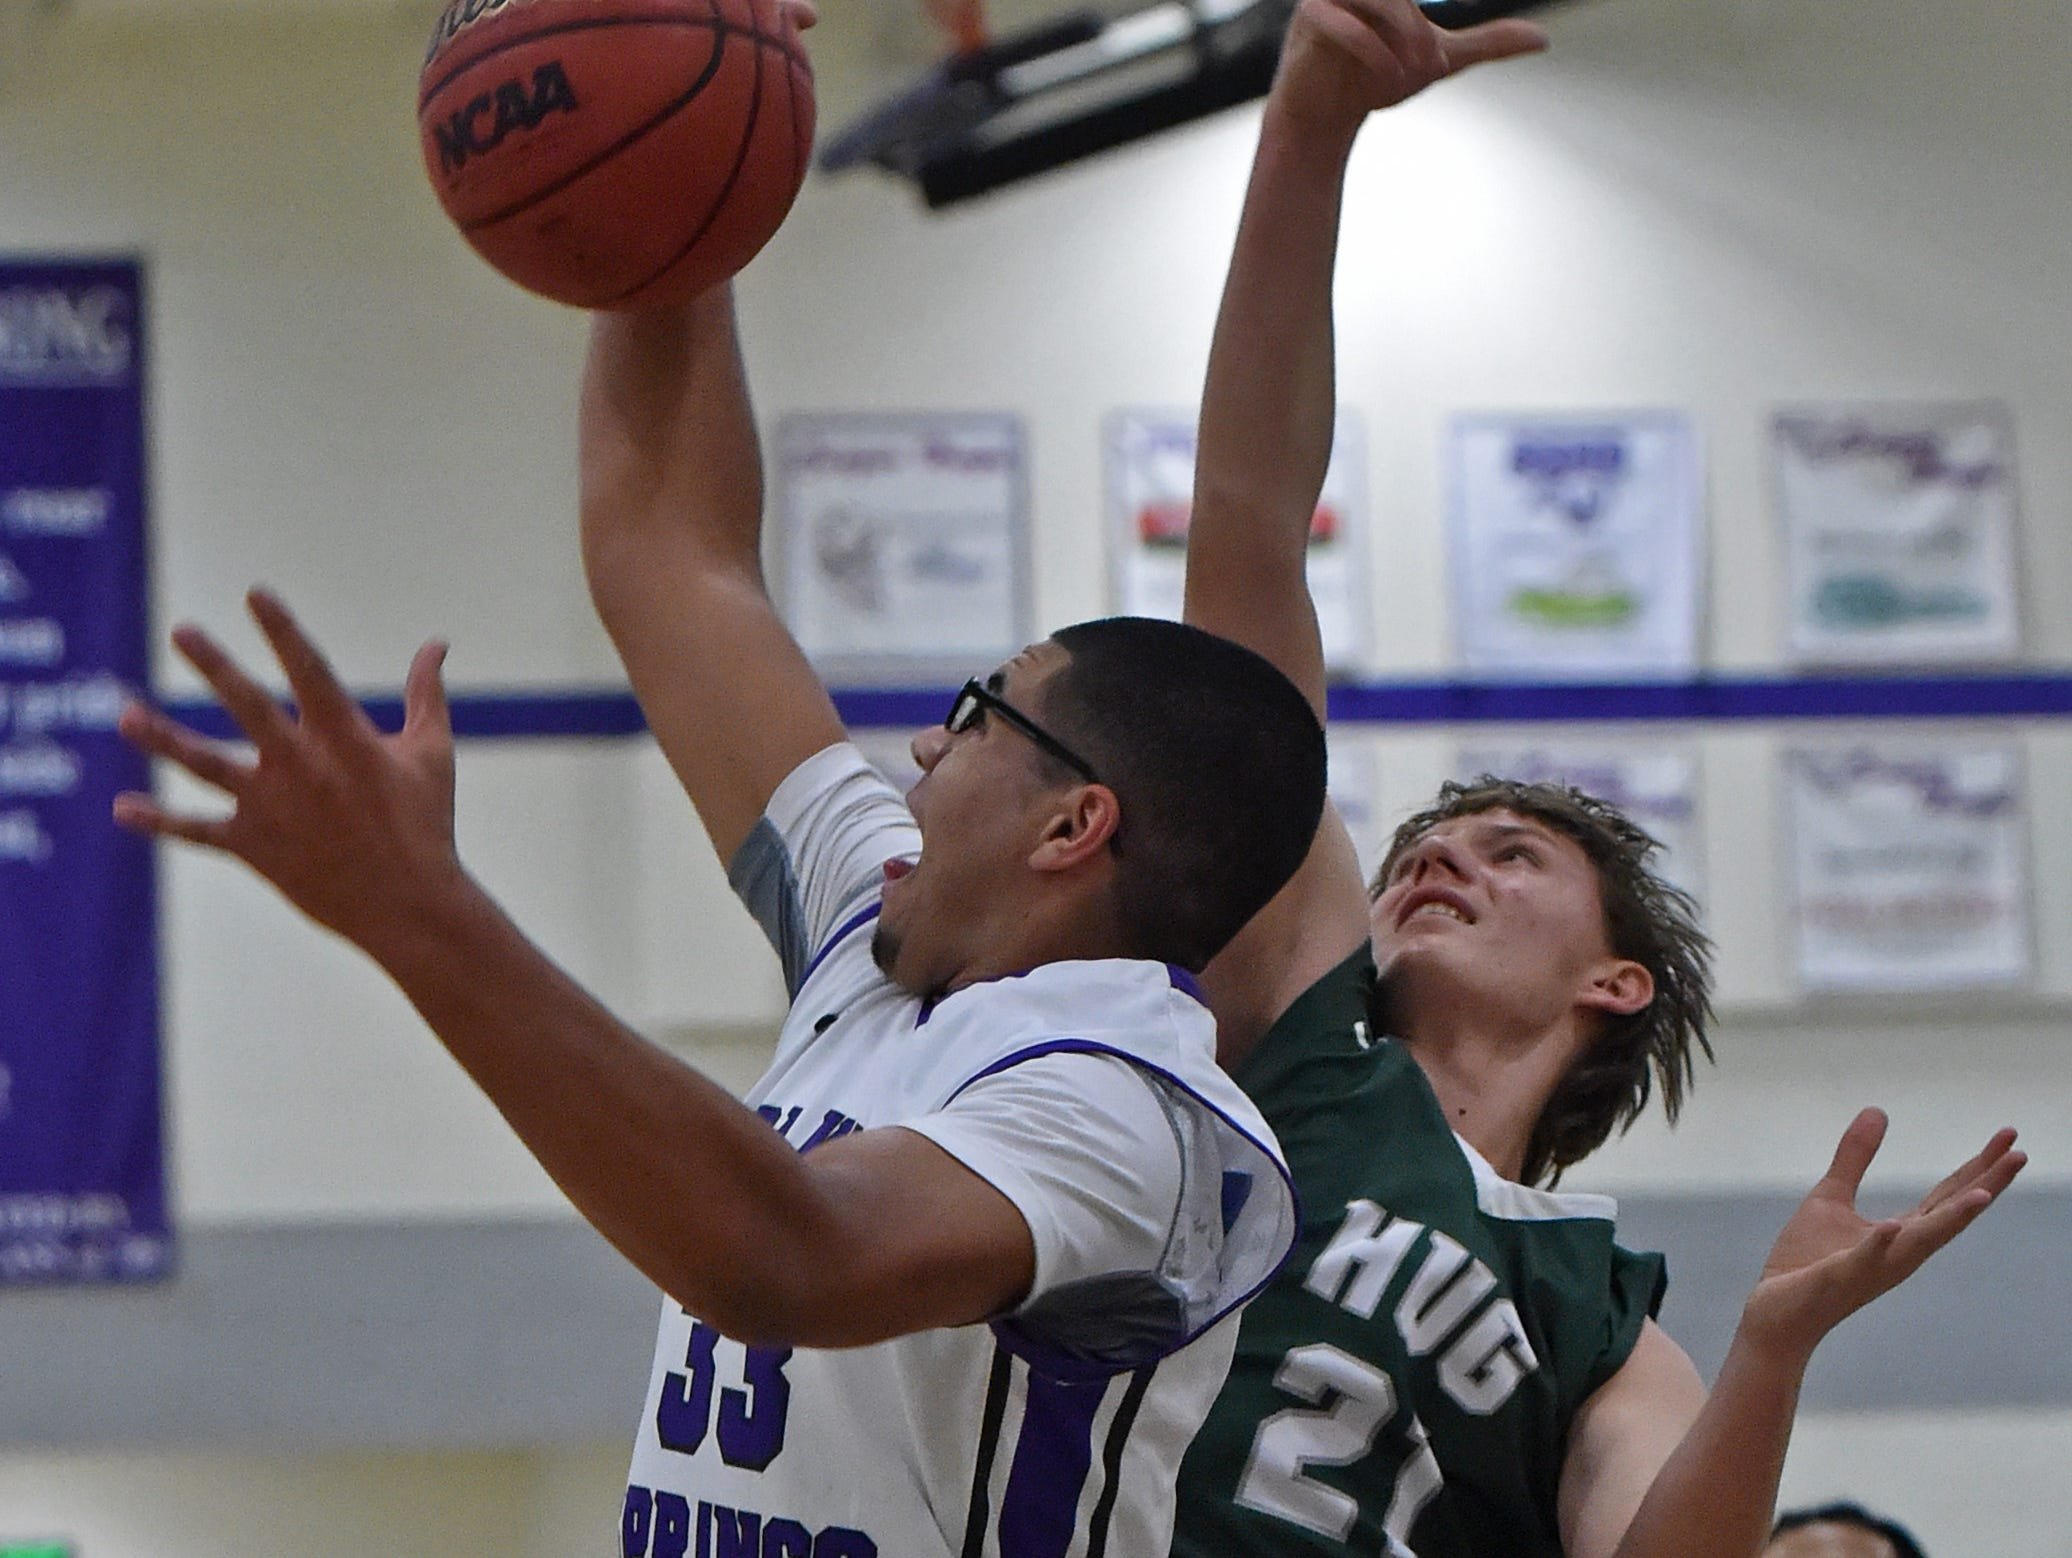 Spanish Springs' Marcus Loadholt beats Hug's Drake Newman to a rebound during the first half of Tuesday's game at Spanish Springs.